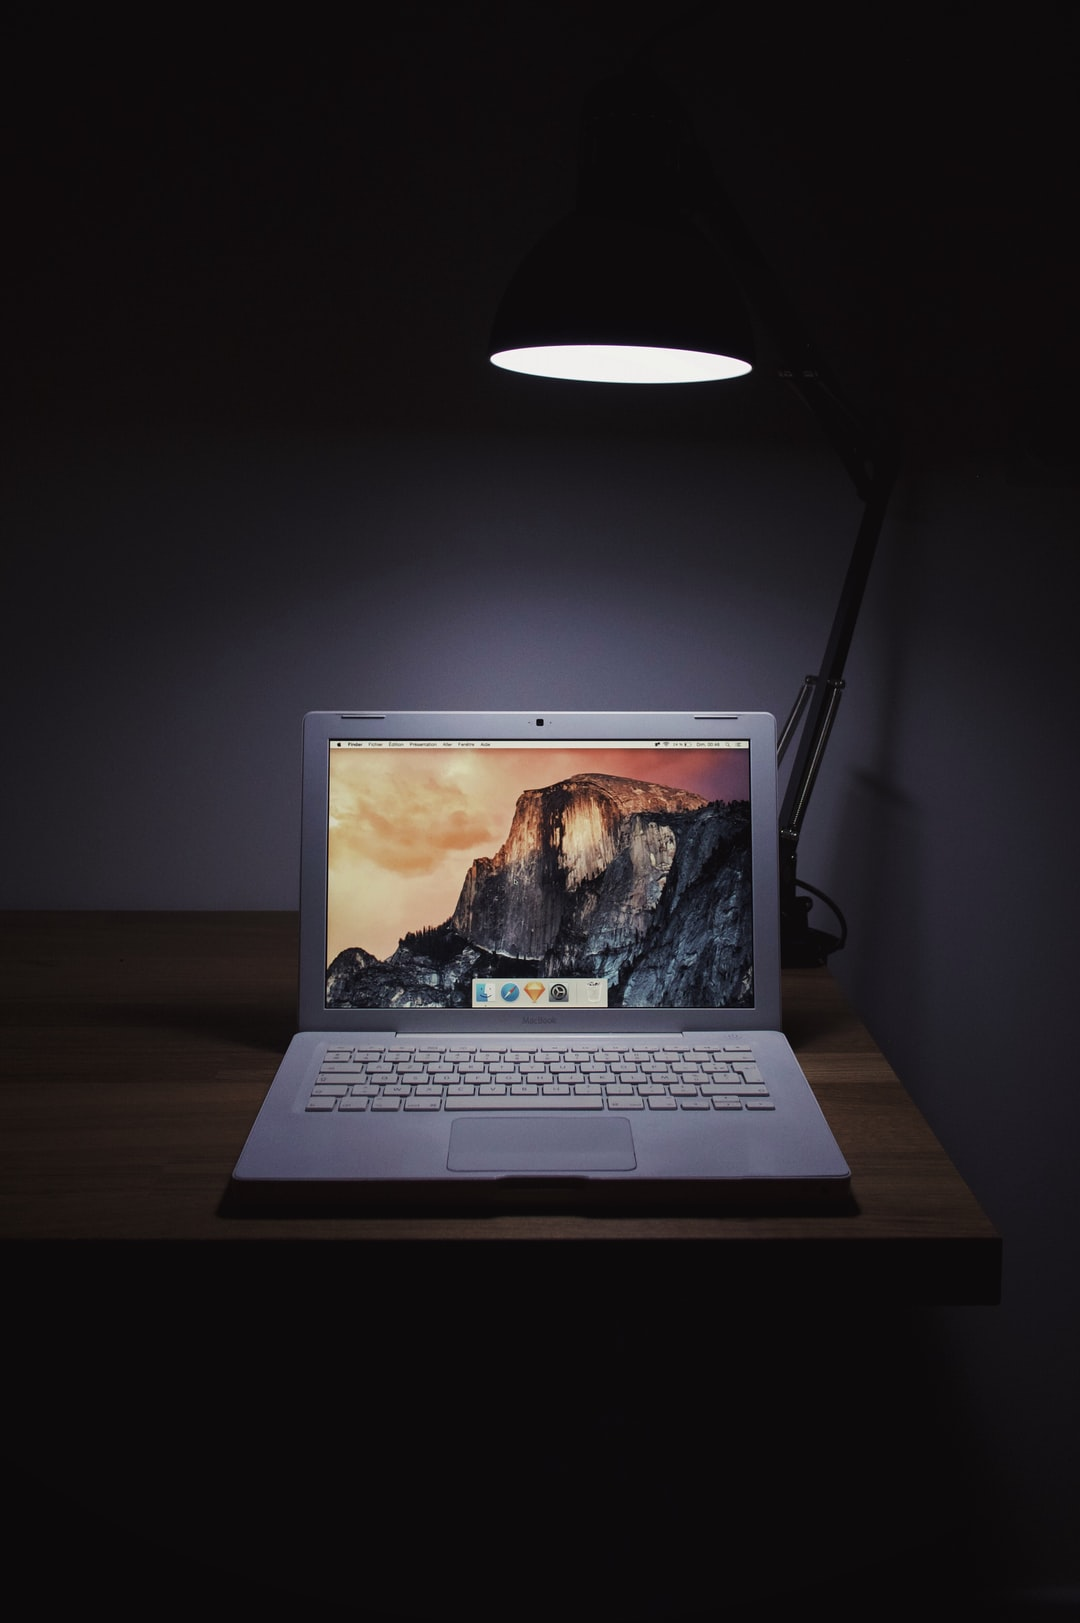 Macbook late 2008 by Apple